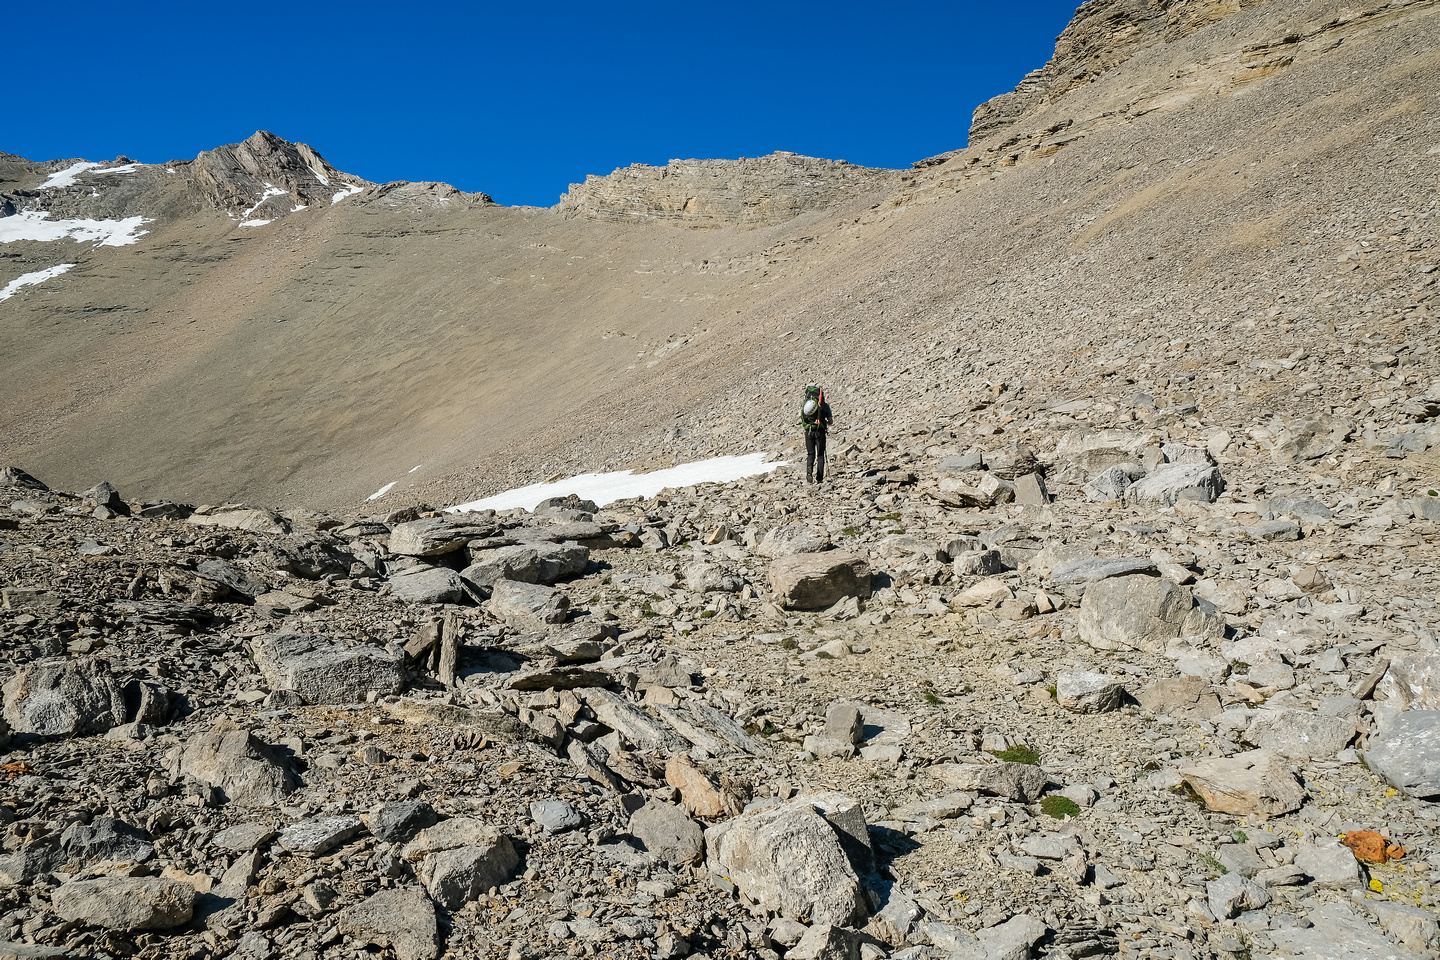 Hiking up loose shale and scree to the 2800m col at top center.